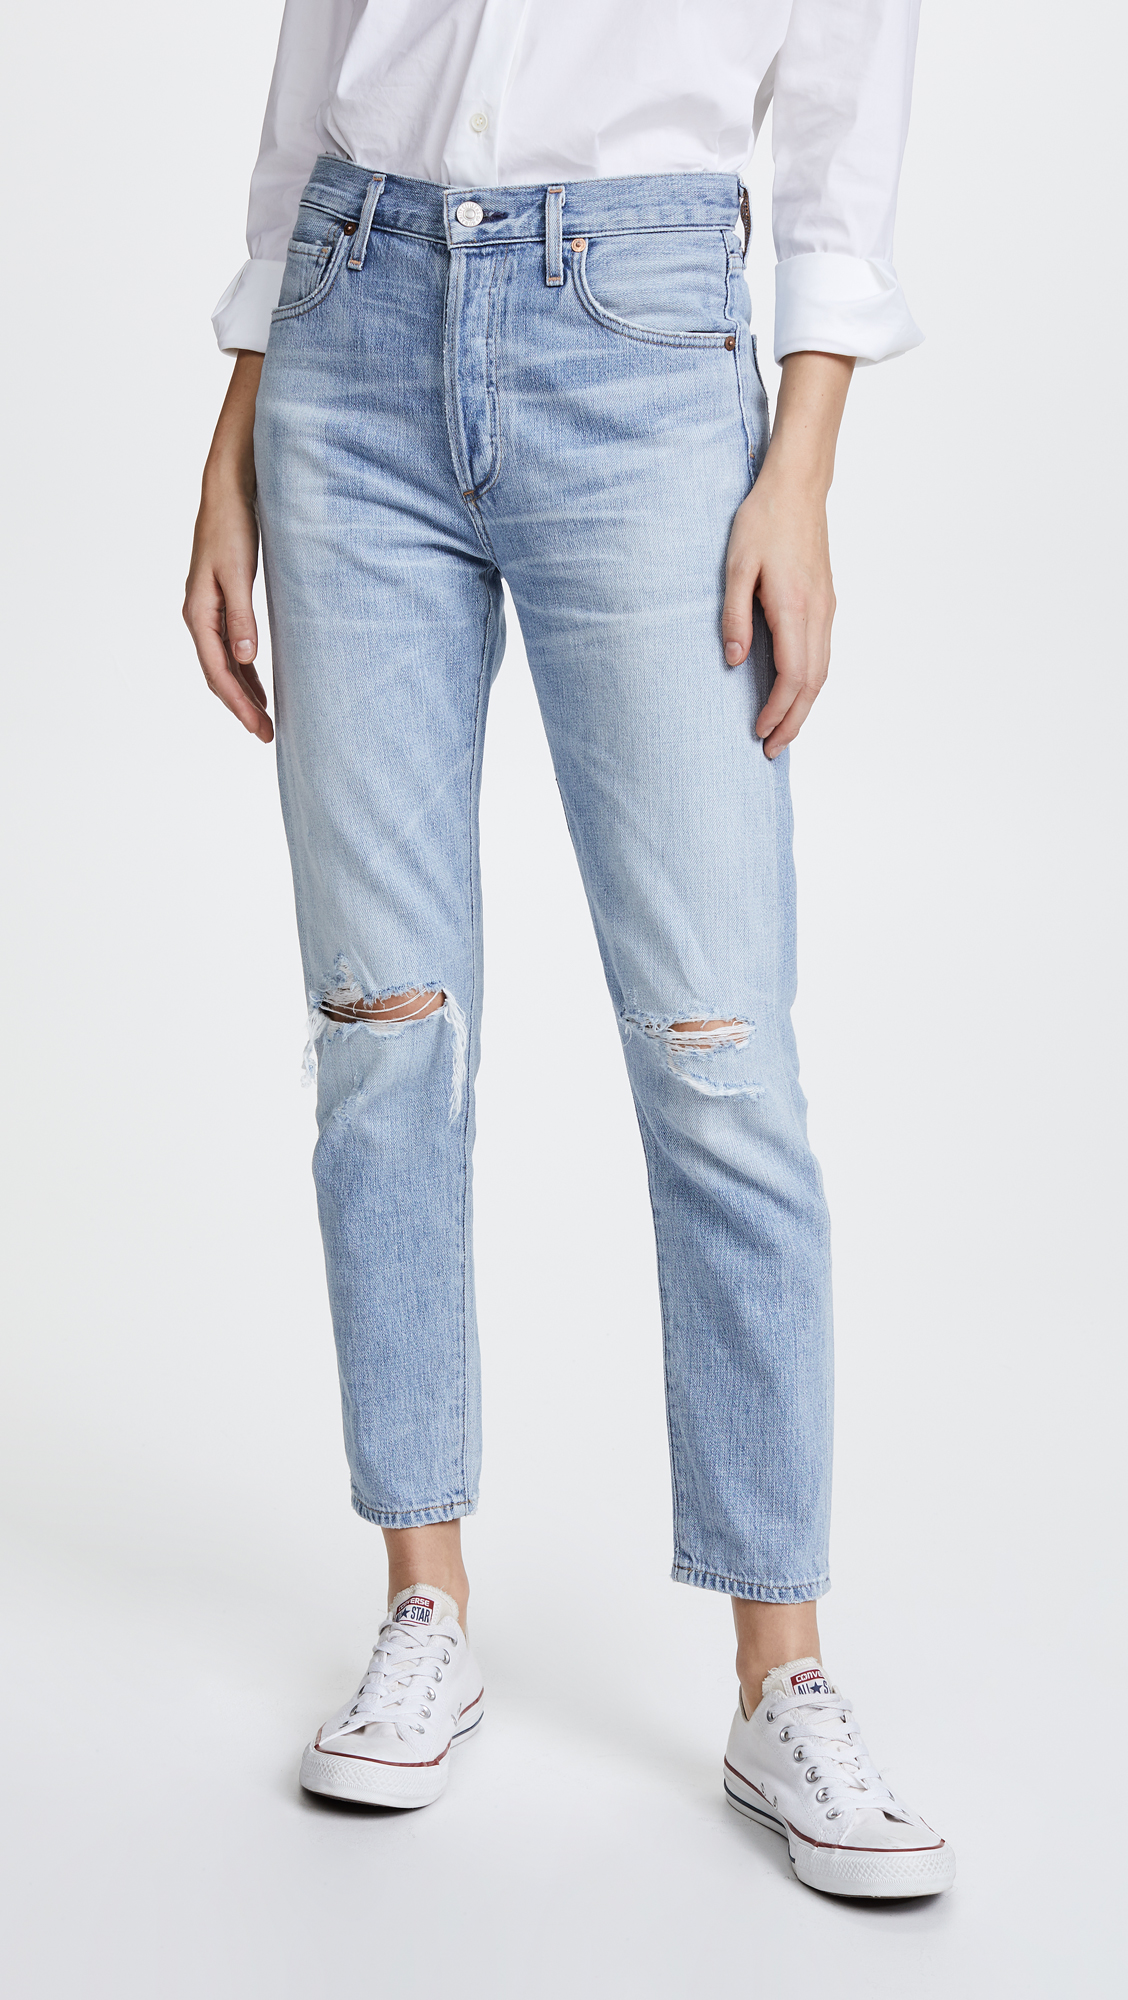 High-Rise Distressed Jeans Ankle Crop Women's